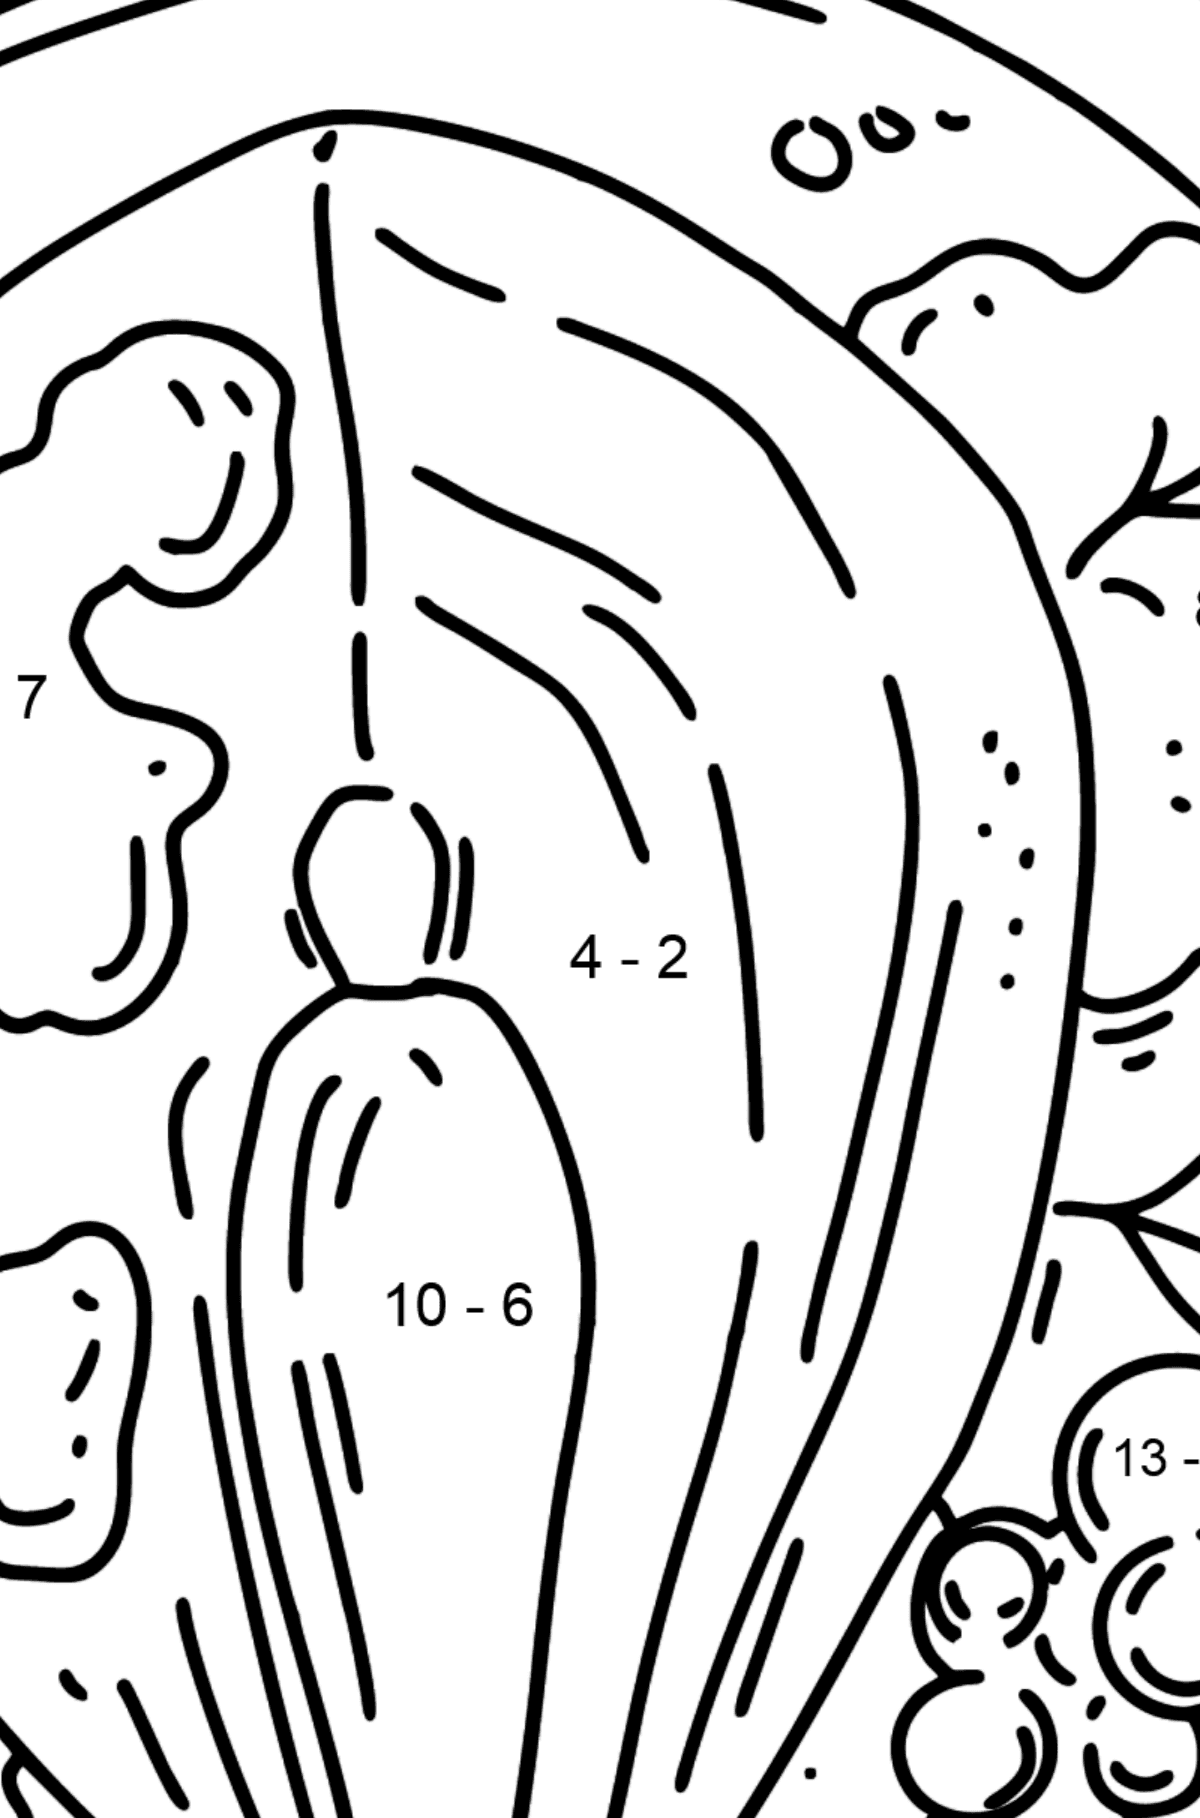 Dinner - Baked Trout coloring page - Math Coloring - Subtraction for Kids